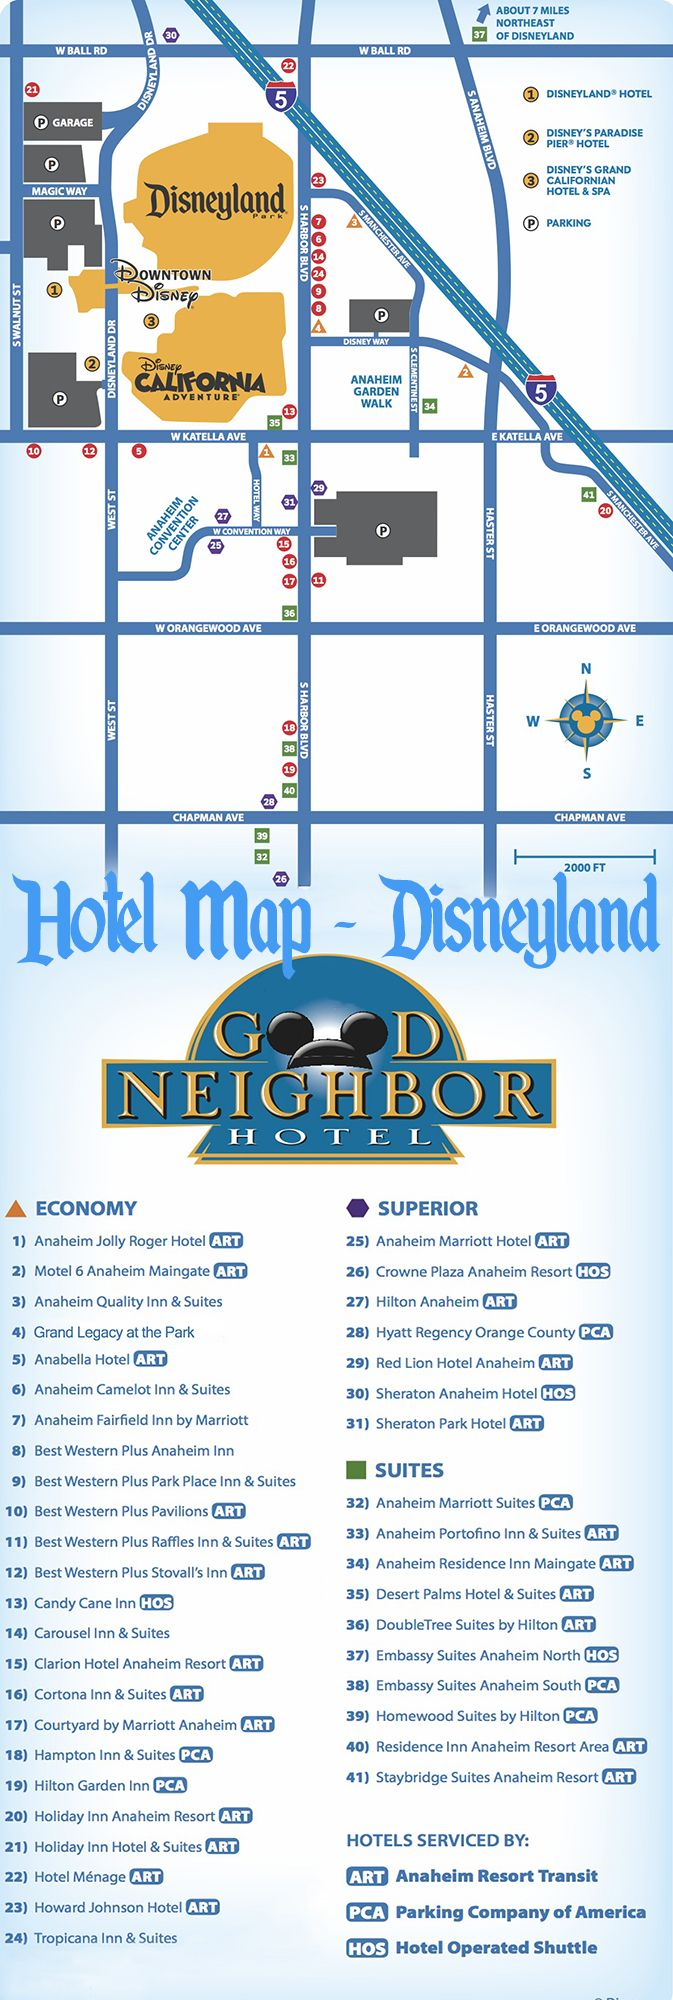 Disneyland Area Hotel Reviews & Rankings | Disneyland area ... on map of holiday inn orange lake, map of hotels chicago, map of disney hotels anaheim, map of amtrak anaheim station, map of duval street hotels, map of pittsburgh hotels, map of asheville hotels, map of downtown disney in anaheim, map of hotels san juan puerto rico, weather in anaheim, map of orange lake resort orlando, map of downtown denver hotels, map of disneyland in anaheim, map of disneyland area hotels, hilton in anaheim, map of hotels california, map of louisville hotels, map of anaheim near disneyland, map of big bear lake hotels, map of amsterdam hotels,